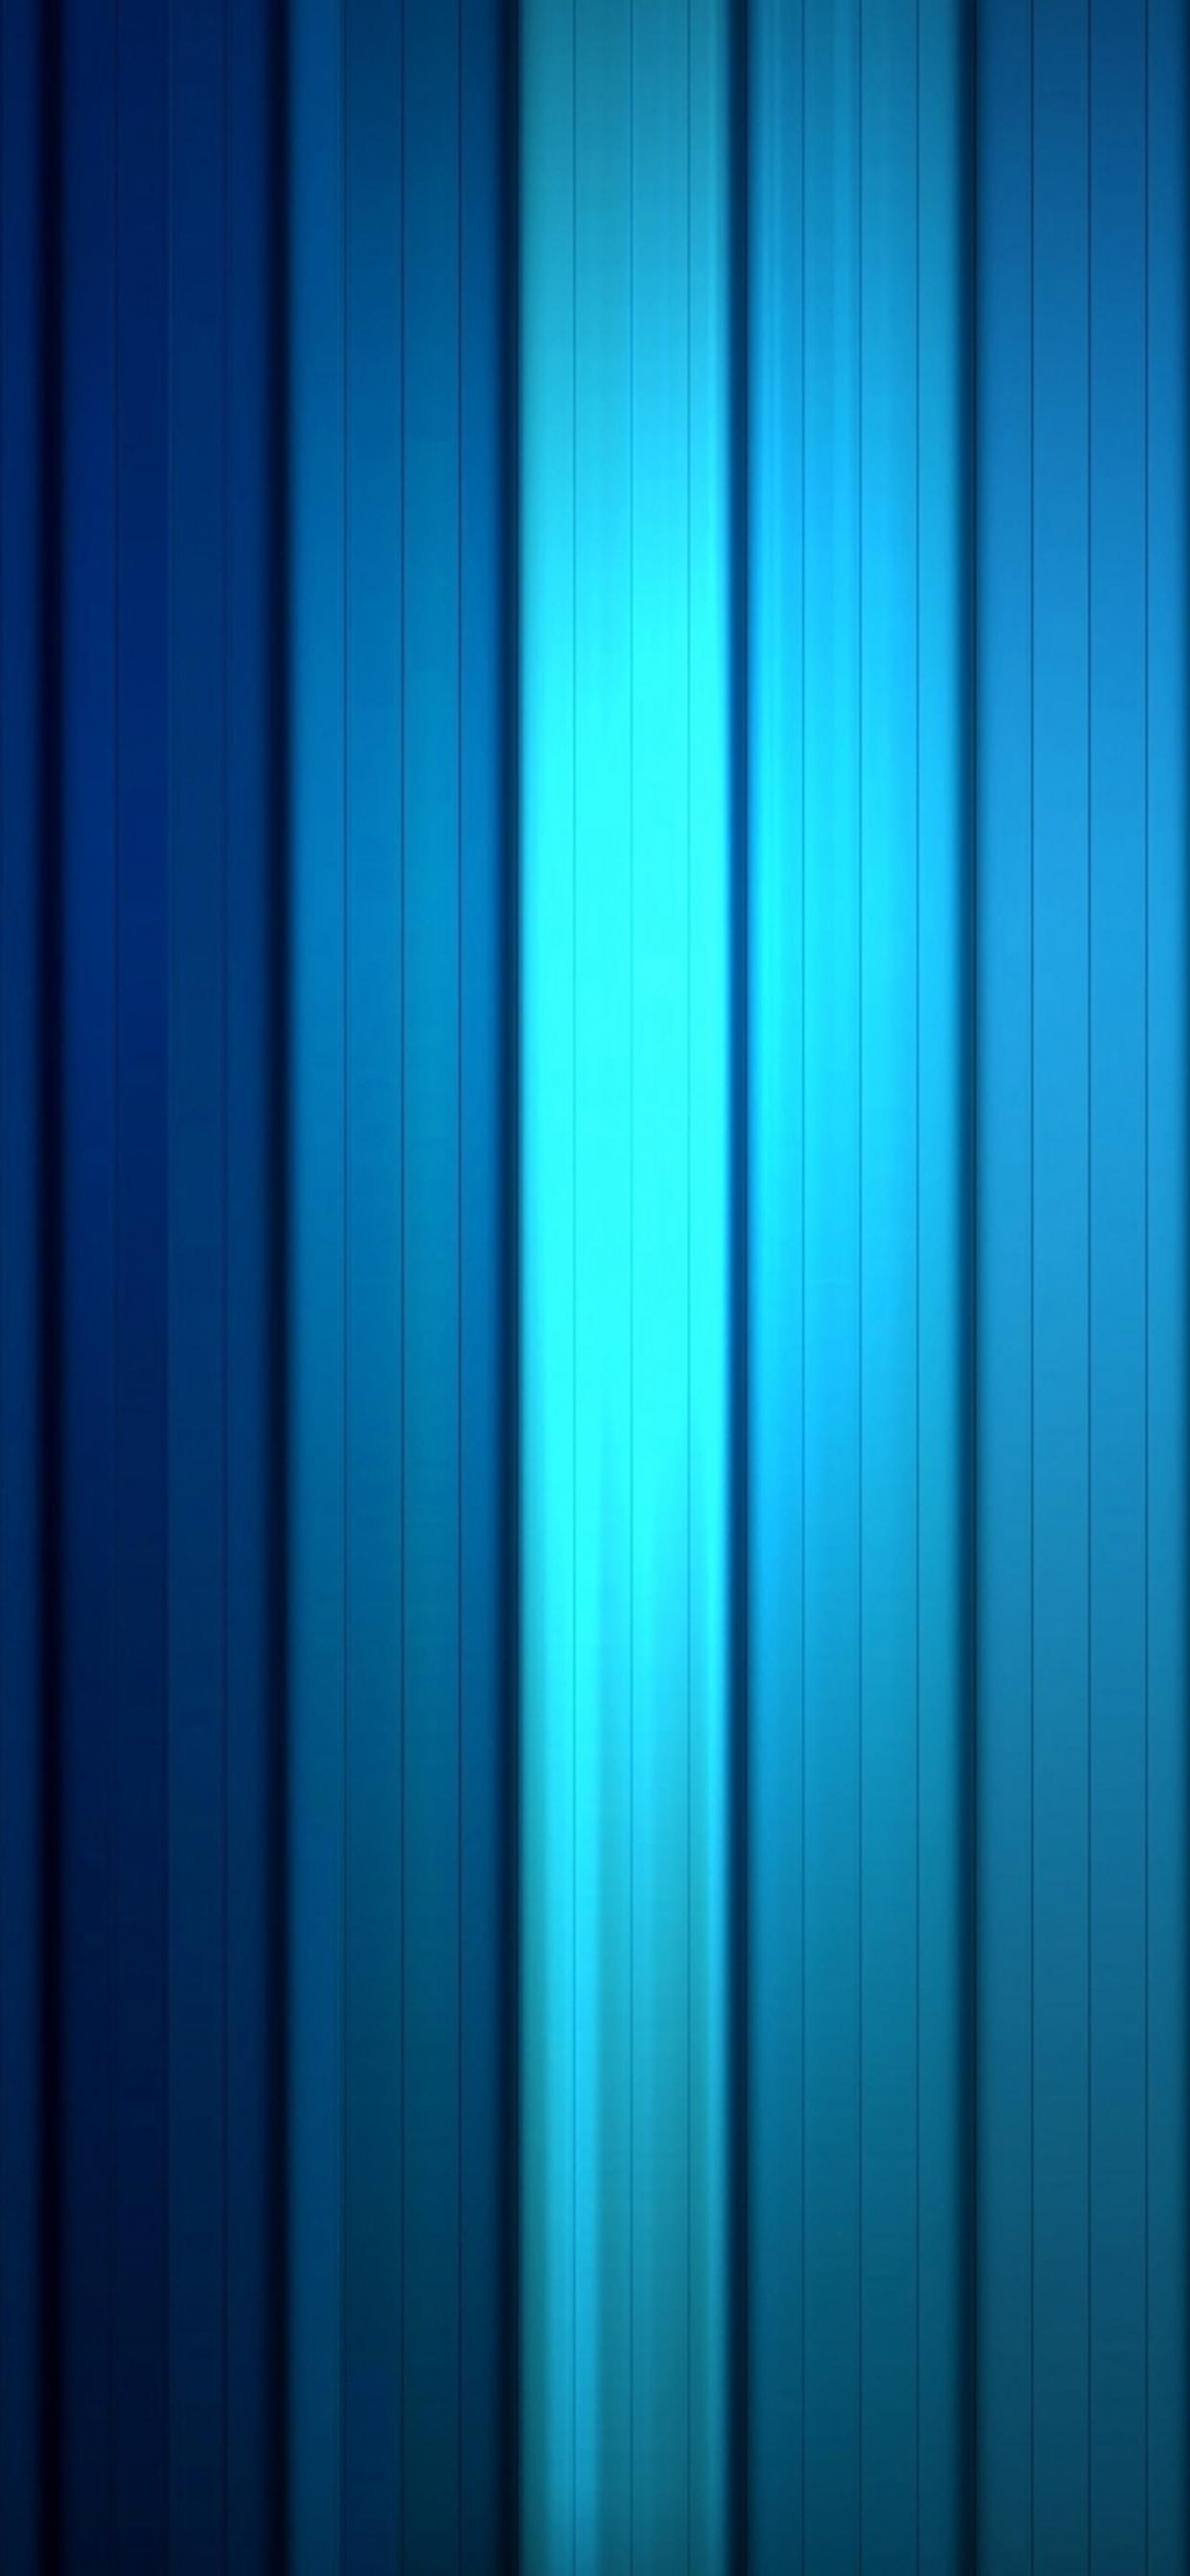 Different Shades Of Blue Abstract Wallpaper